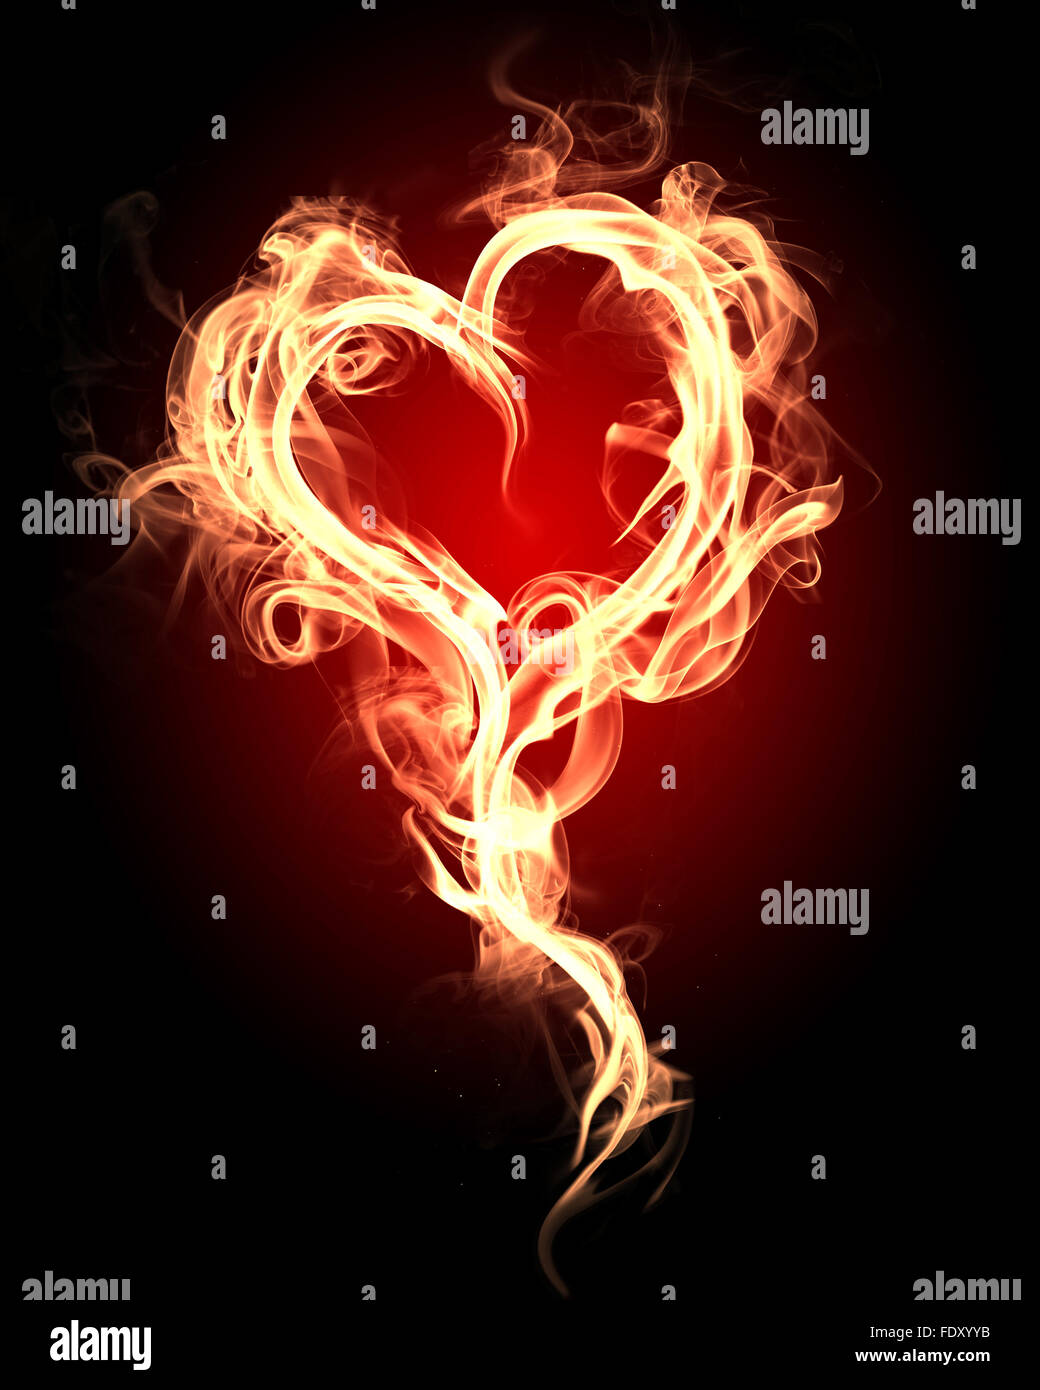 burning heart with flames